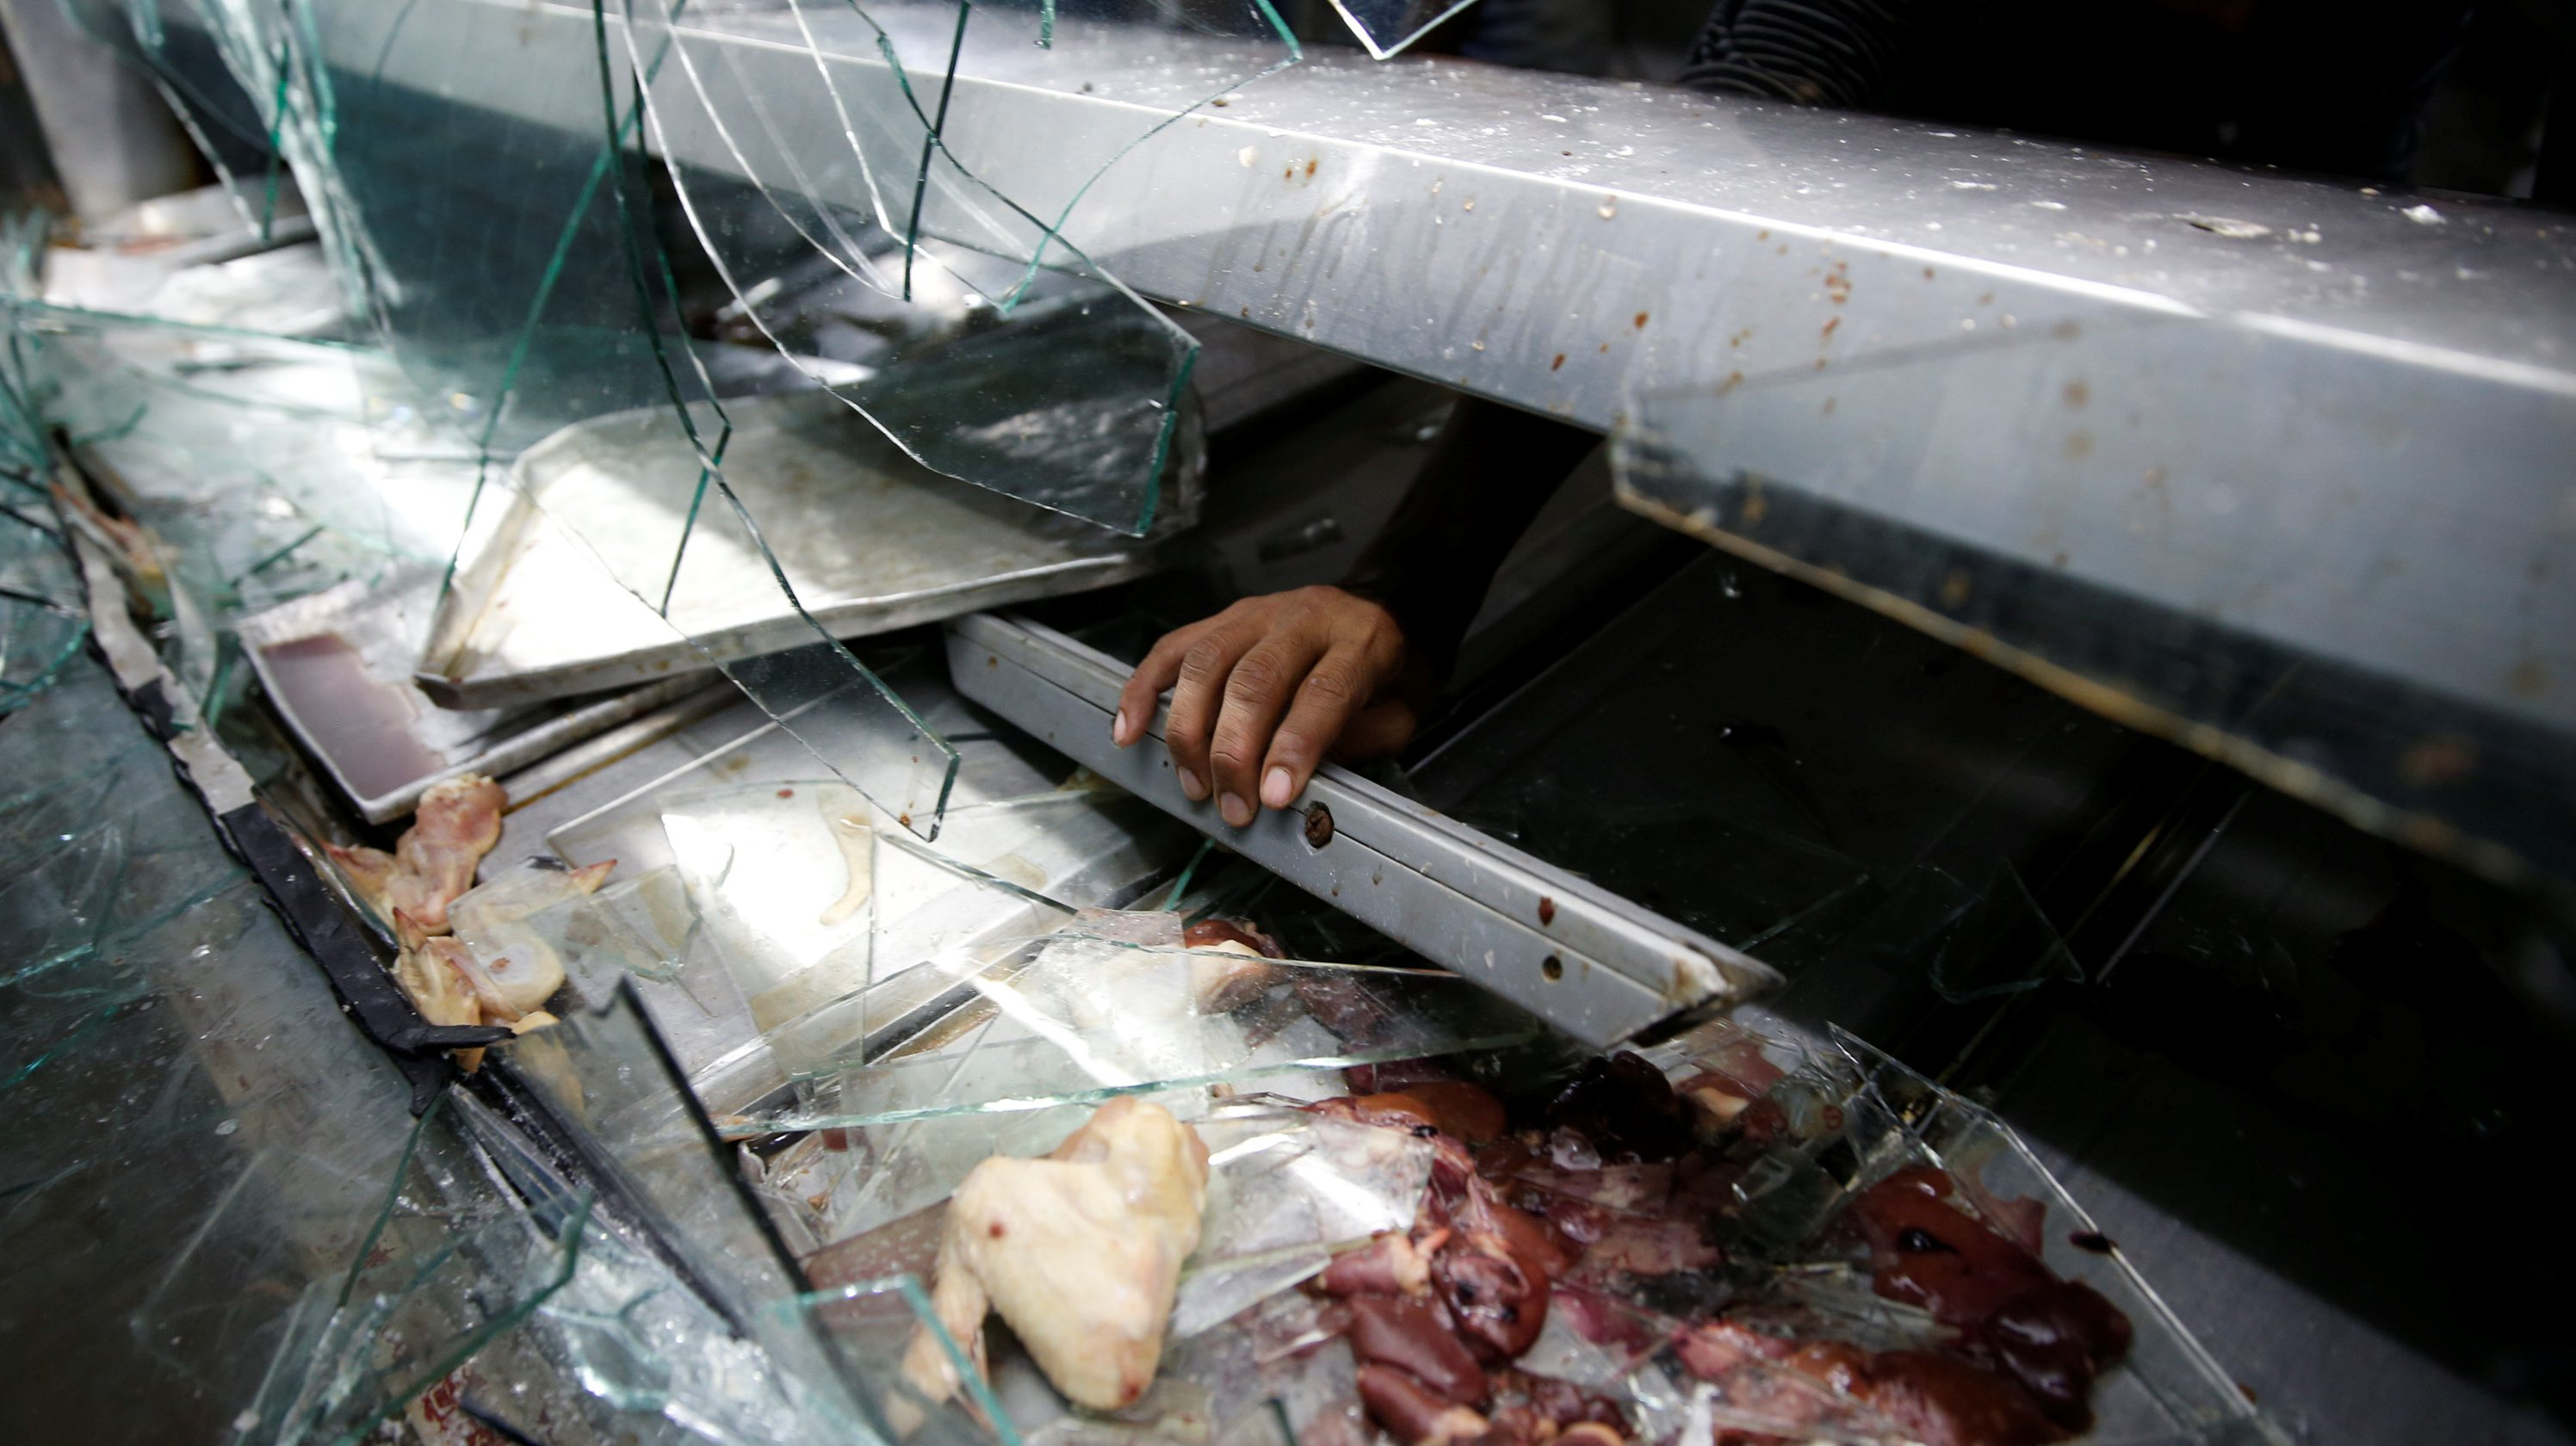 A man grabs a piece of a broken refrigerator, after a butcher's stall was looted in the slum of Petare in Caracas